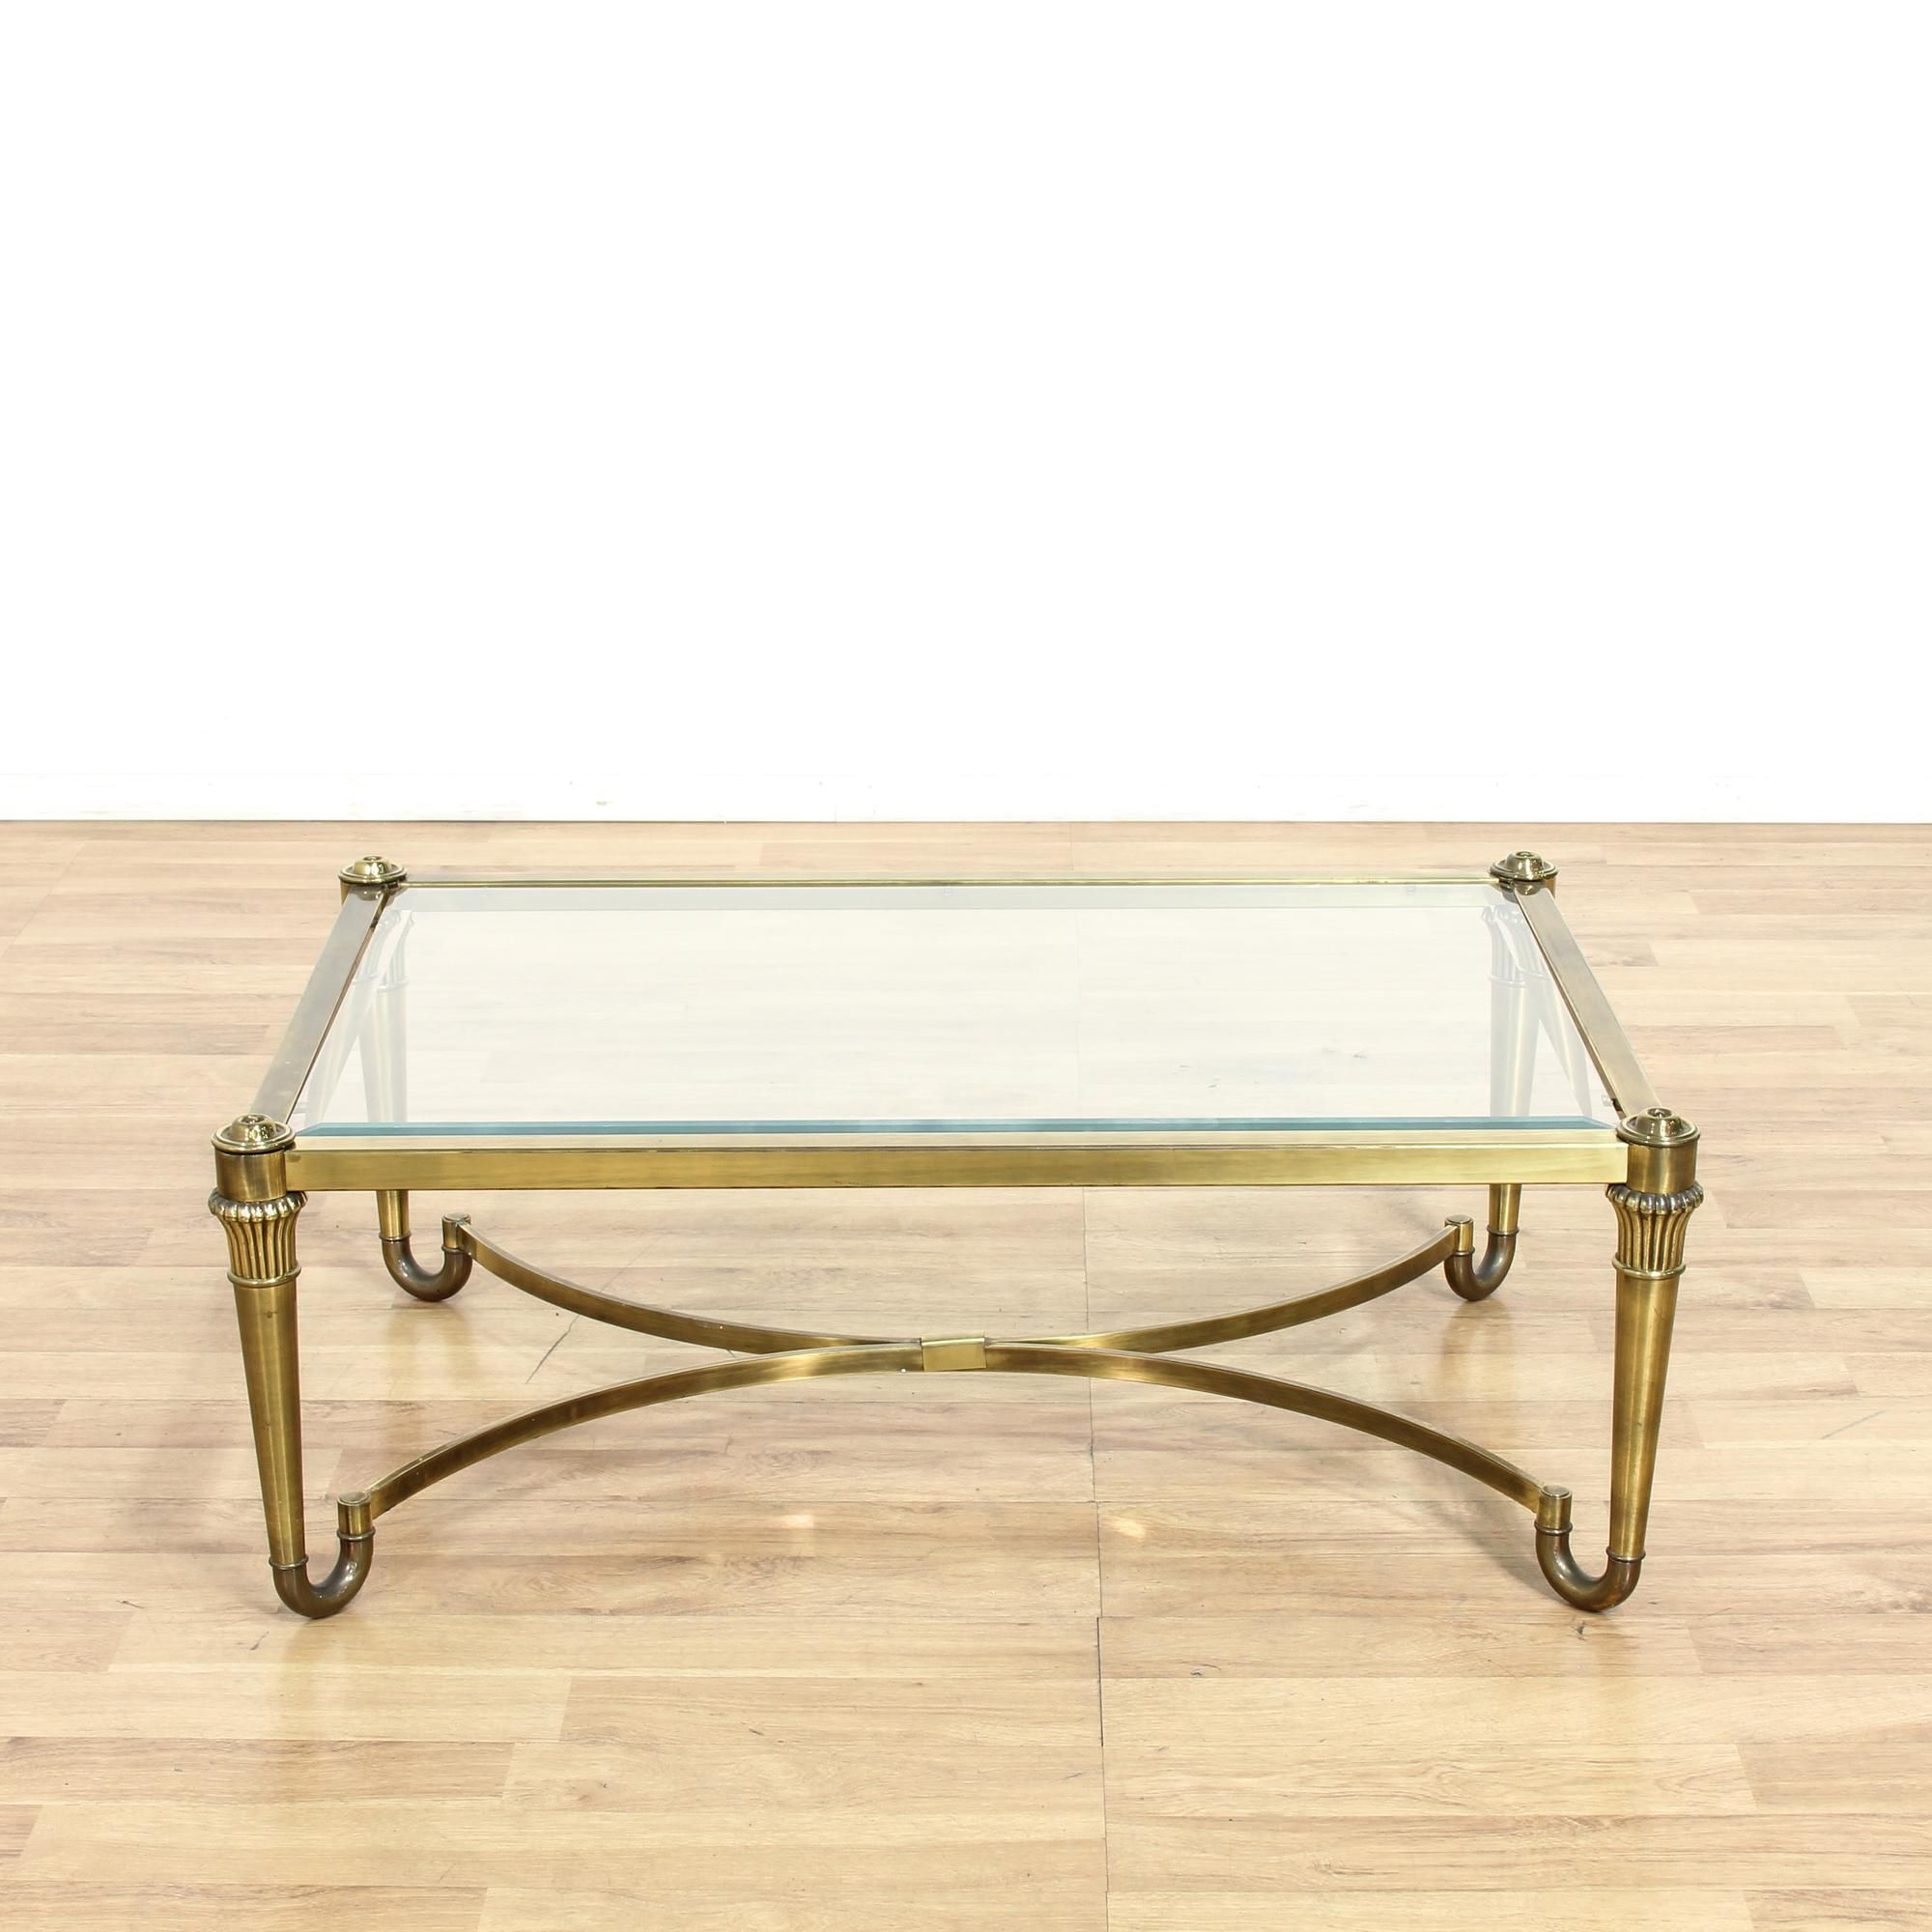 Elke Glass Console Tables With Brass Base Intended For Most Recent This Hollywood Regency Coffee Table Is Featured In A Durable Metal (Gallery 13 of 20)